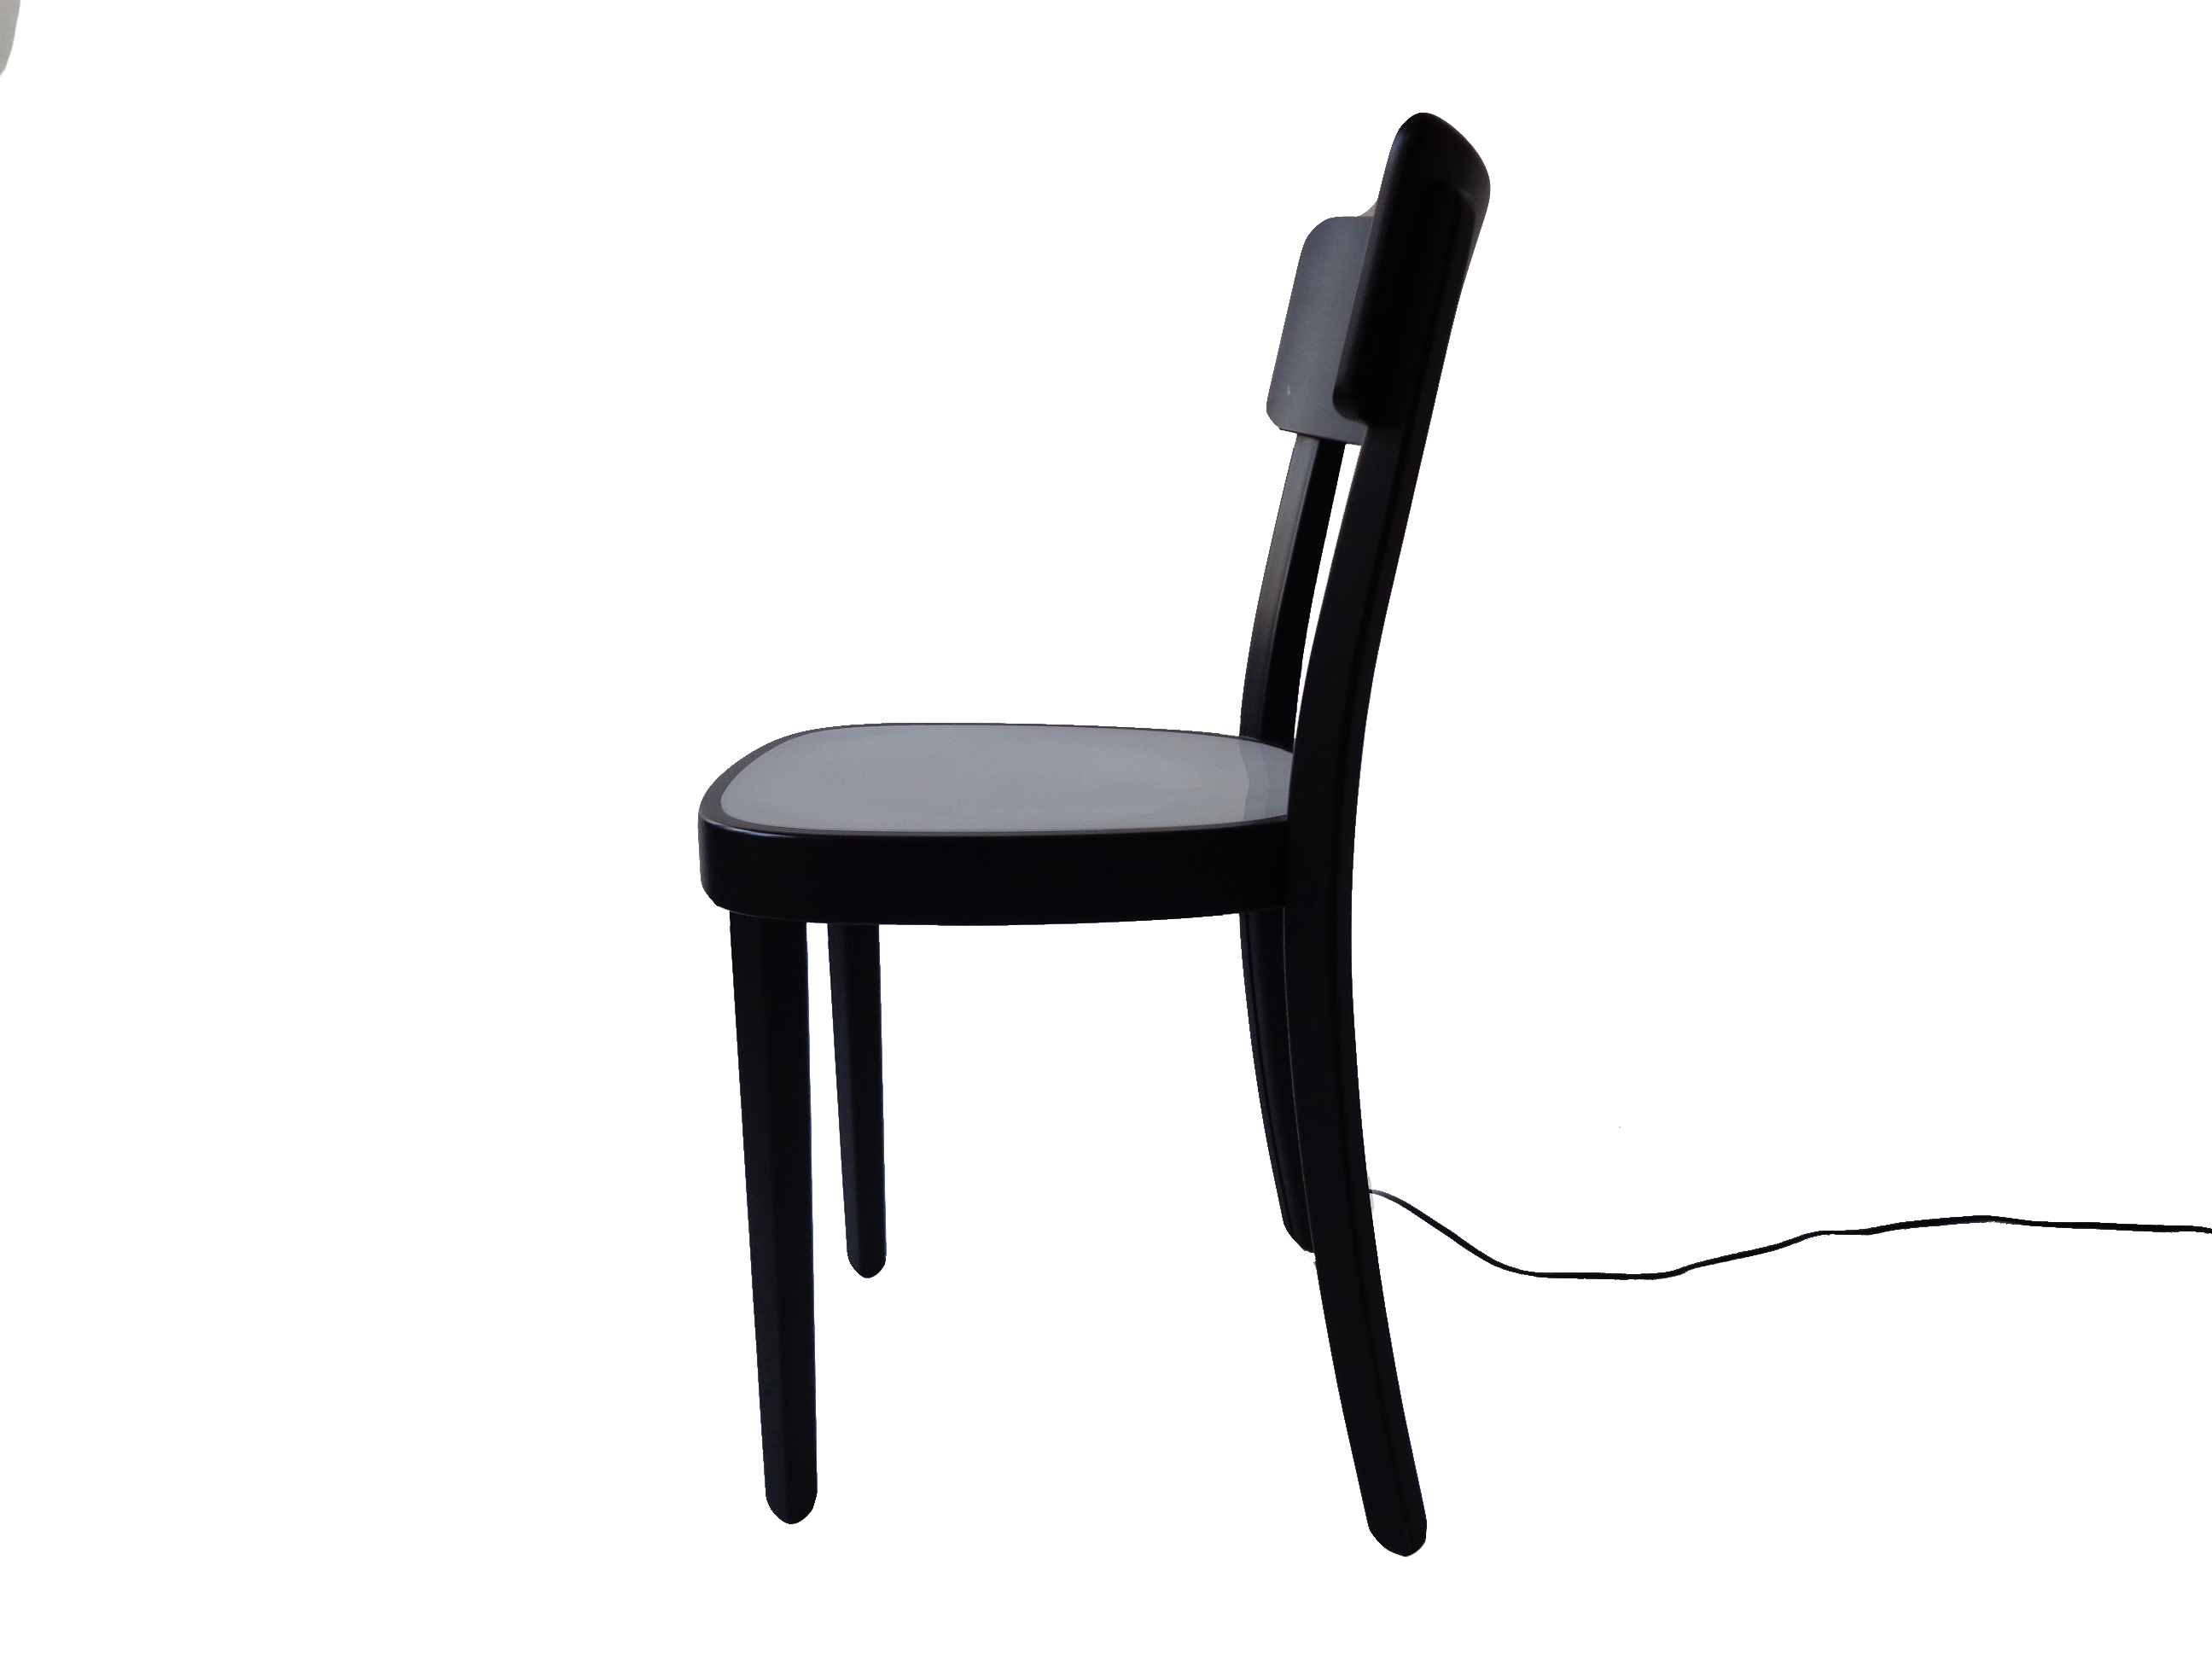 Horgen Glarus neonlight chair for Hidden